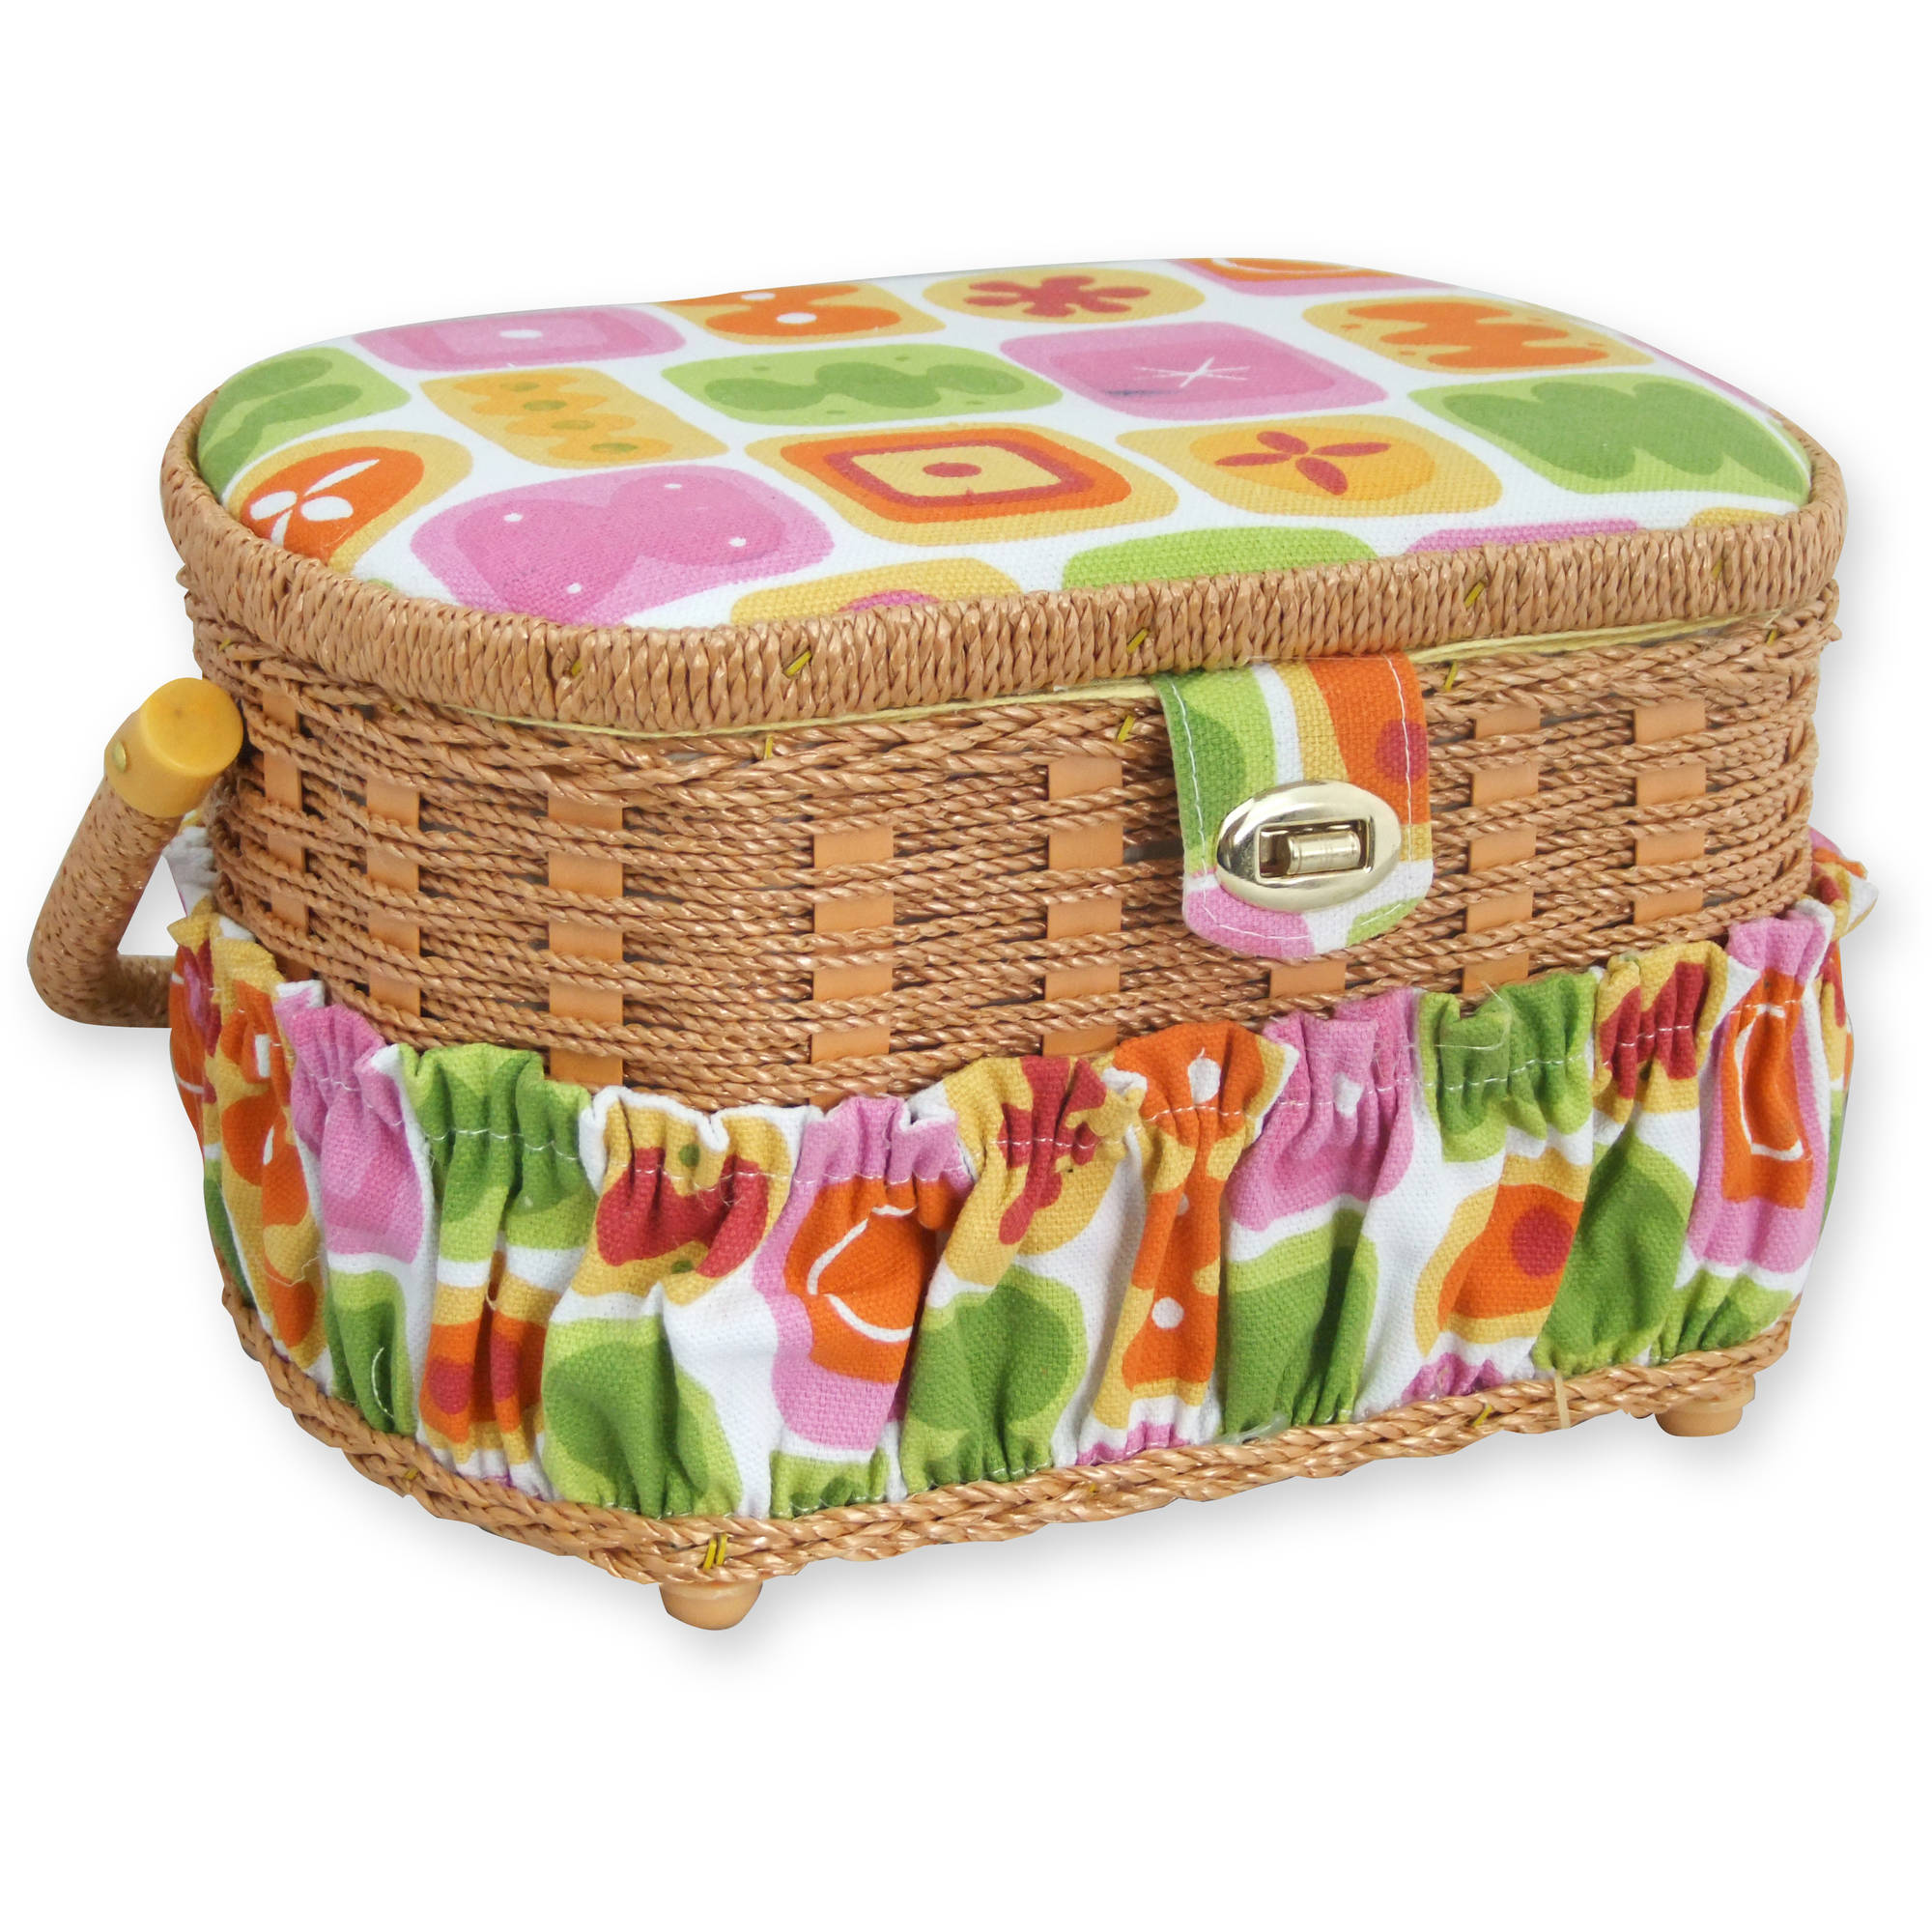 Michley Sewing Basket with 41-Piece Sewing Kit